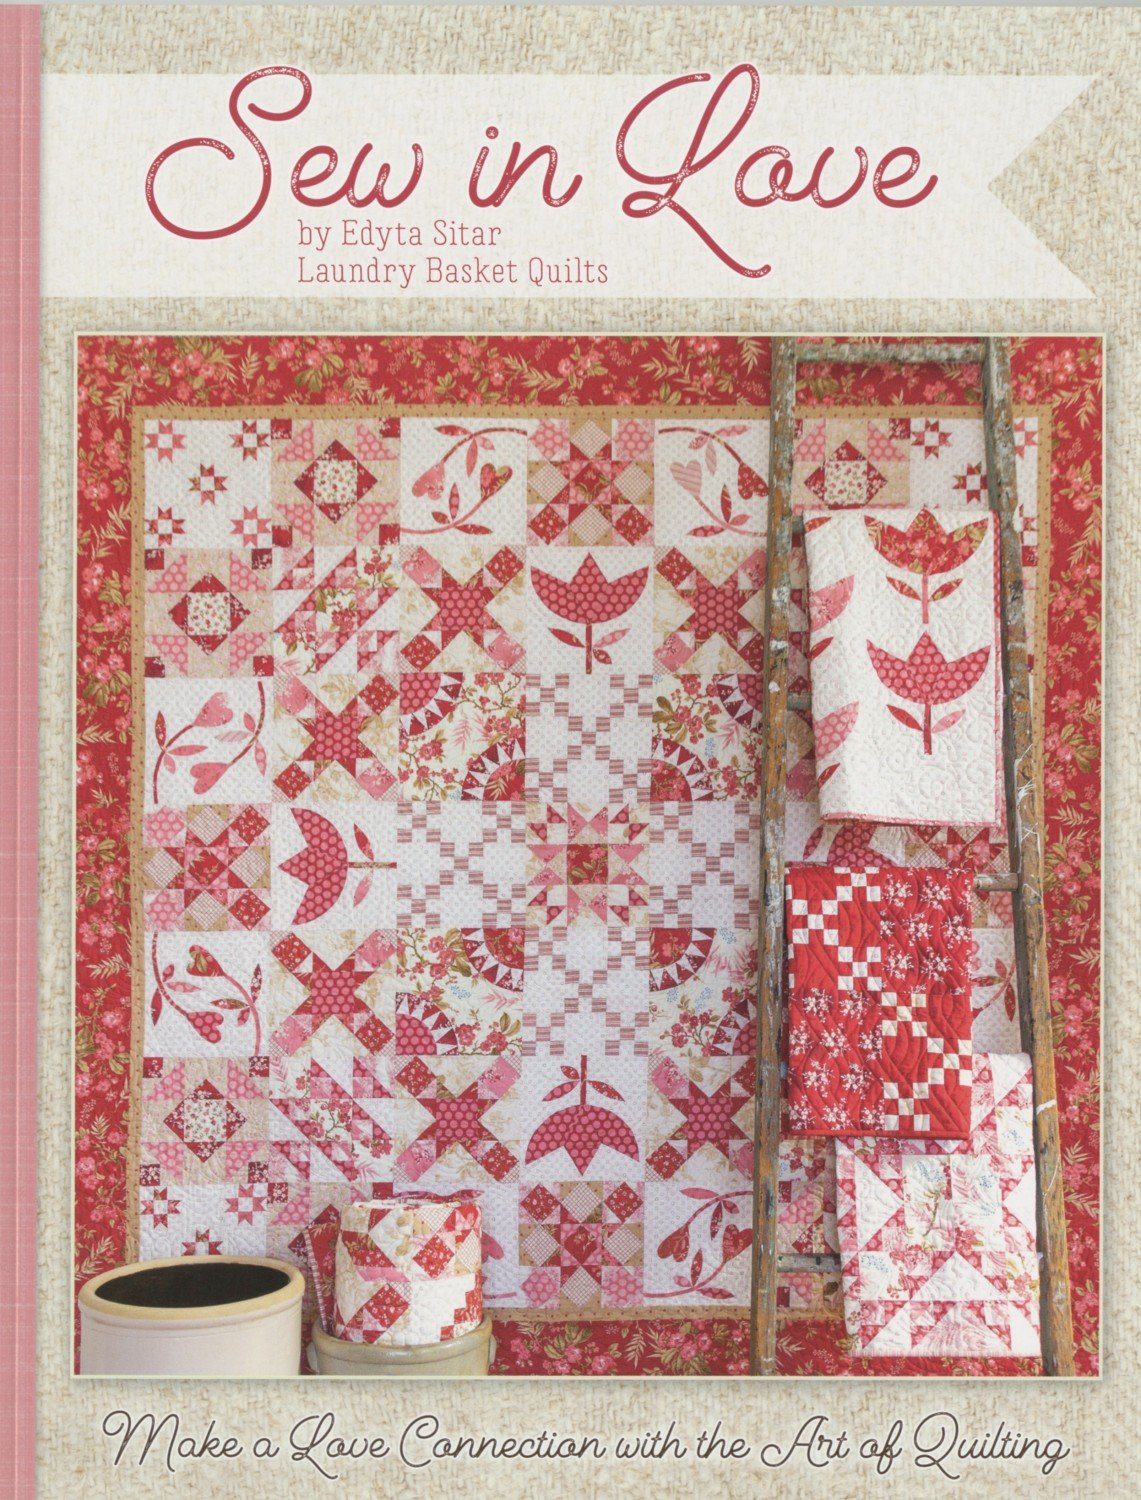 Sew In Love - Edyta Sitar - Laundry Basket Quilts